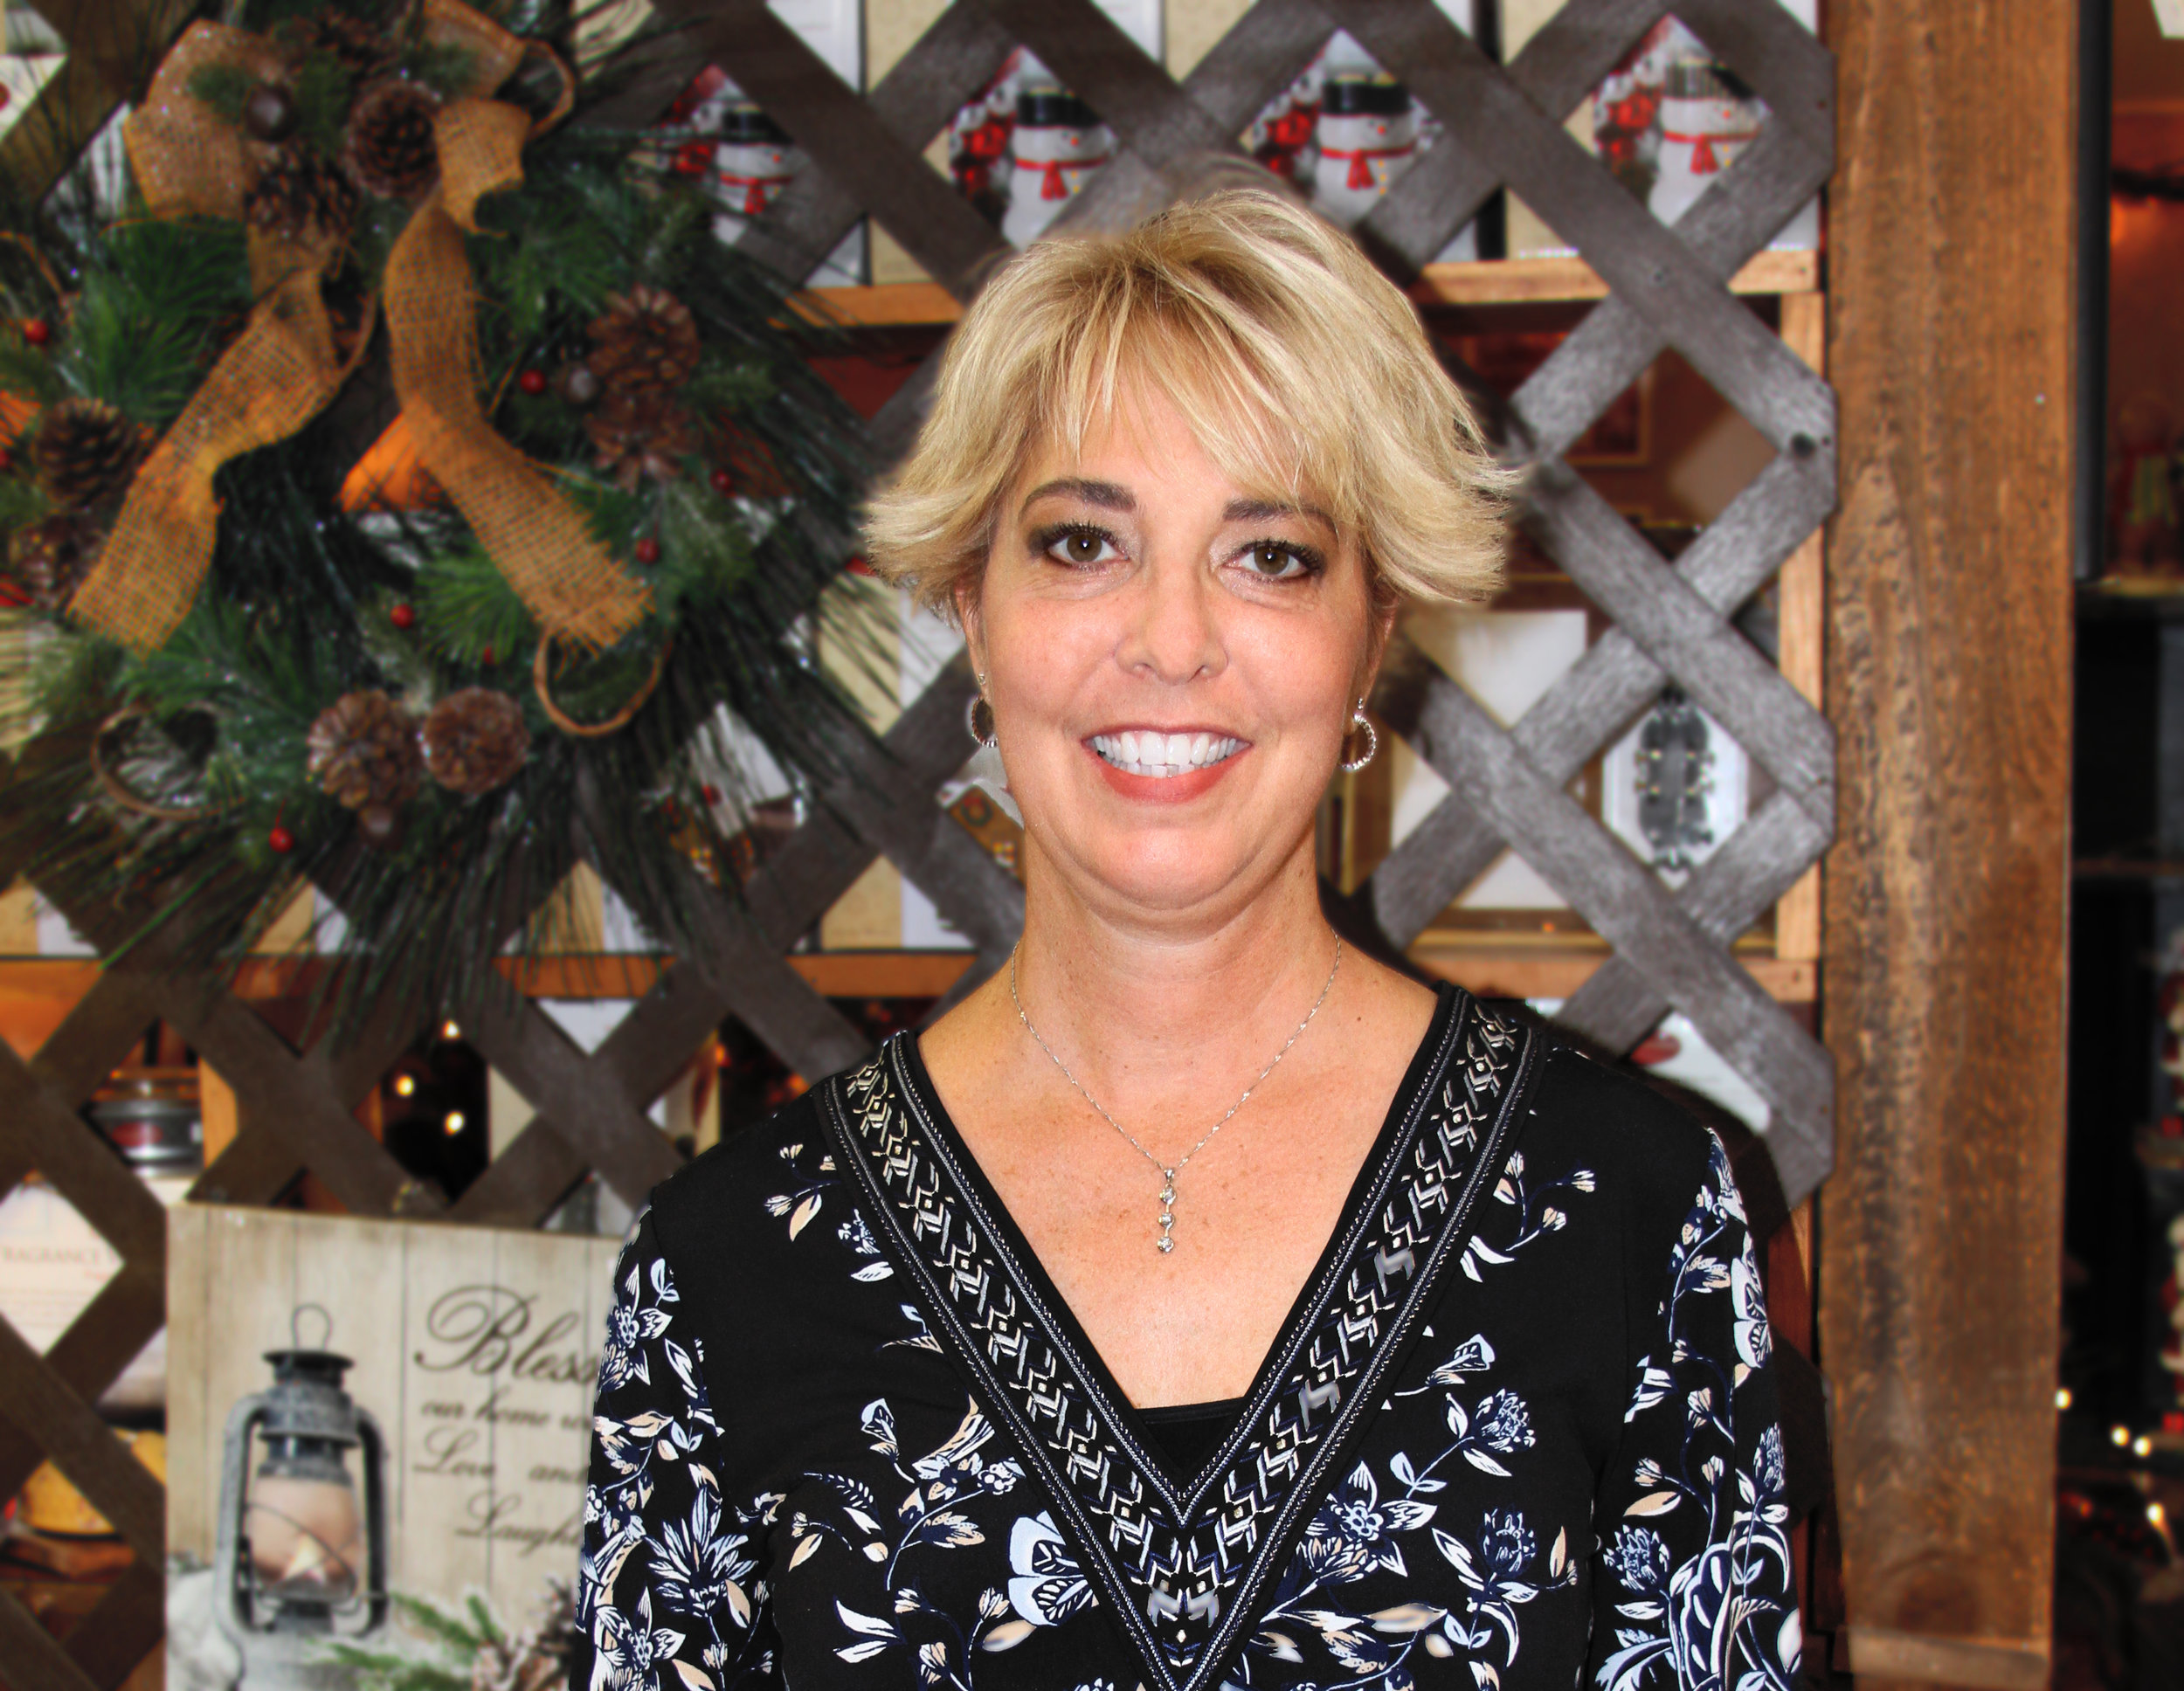 Dr. Sandy Thornbury - Since June of 1998, Care More Pharmacy has been an integral part of the Dorton community and is owned and operated locally by pharmacist Sandy Thornbury.She studied pharmacy at the University of Kentucky and is truly passionate about helping people and her customers.